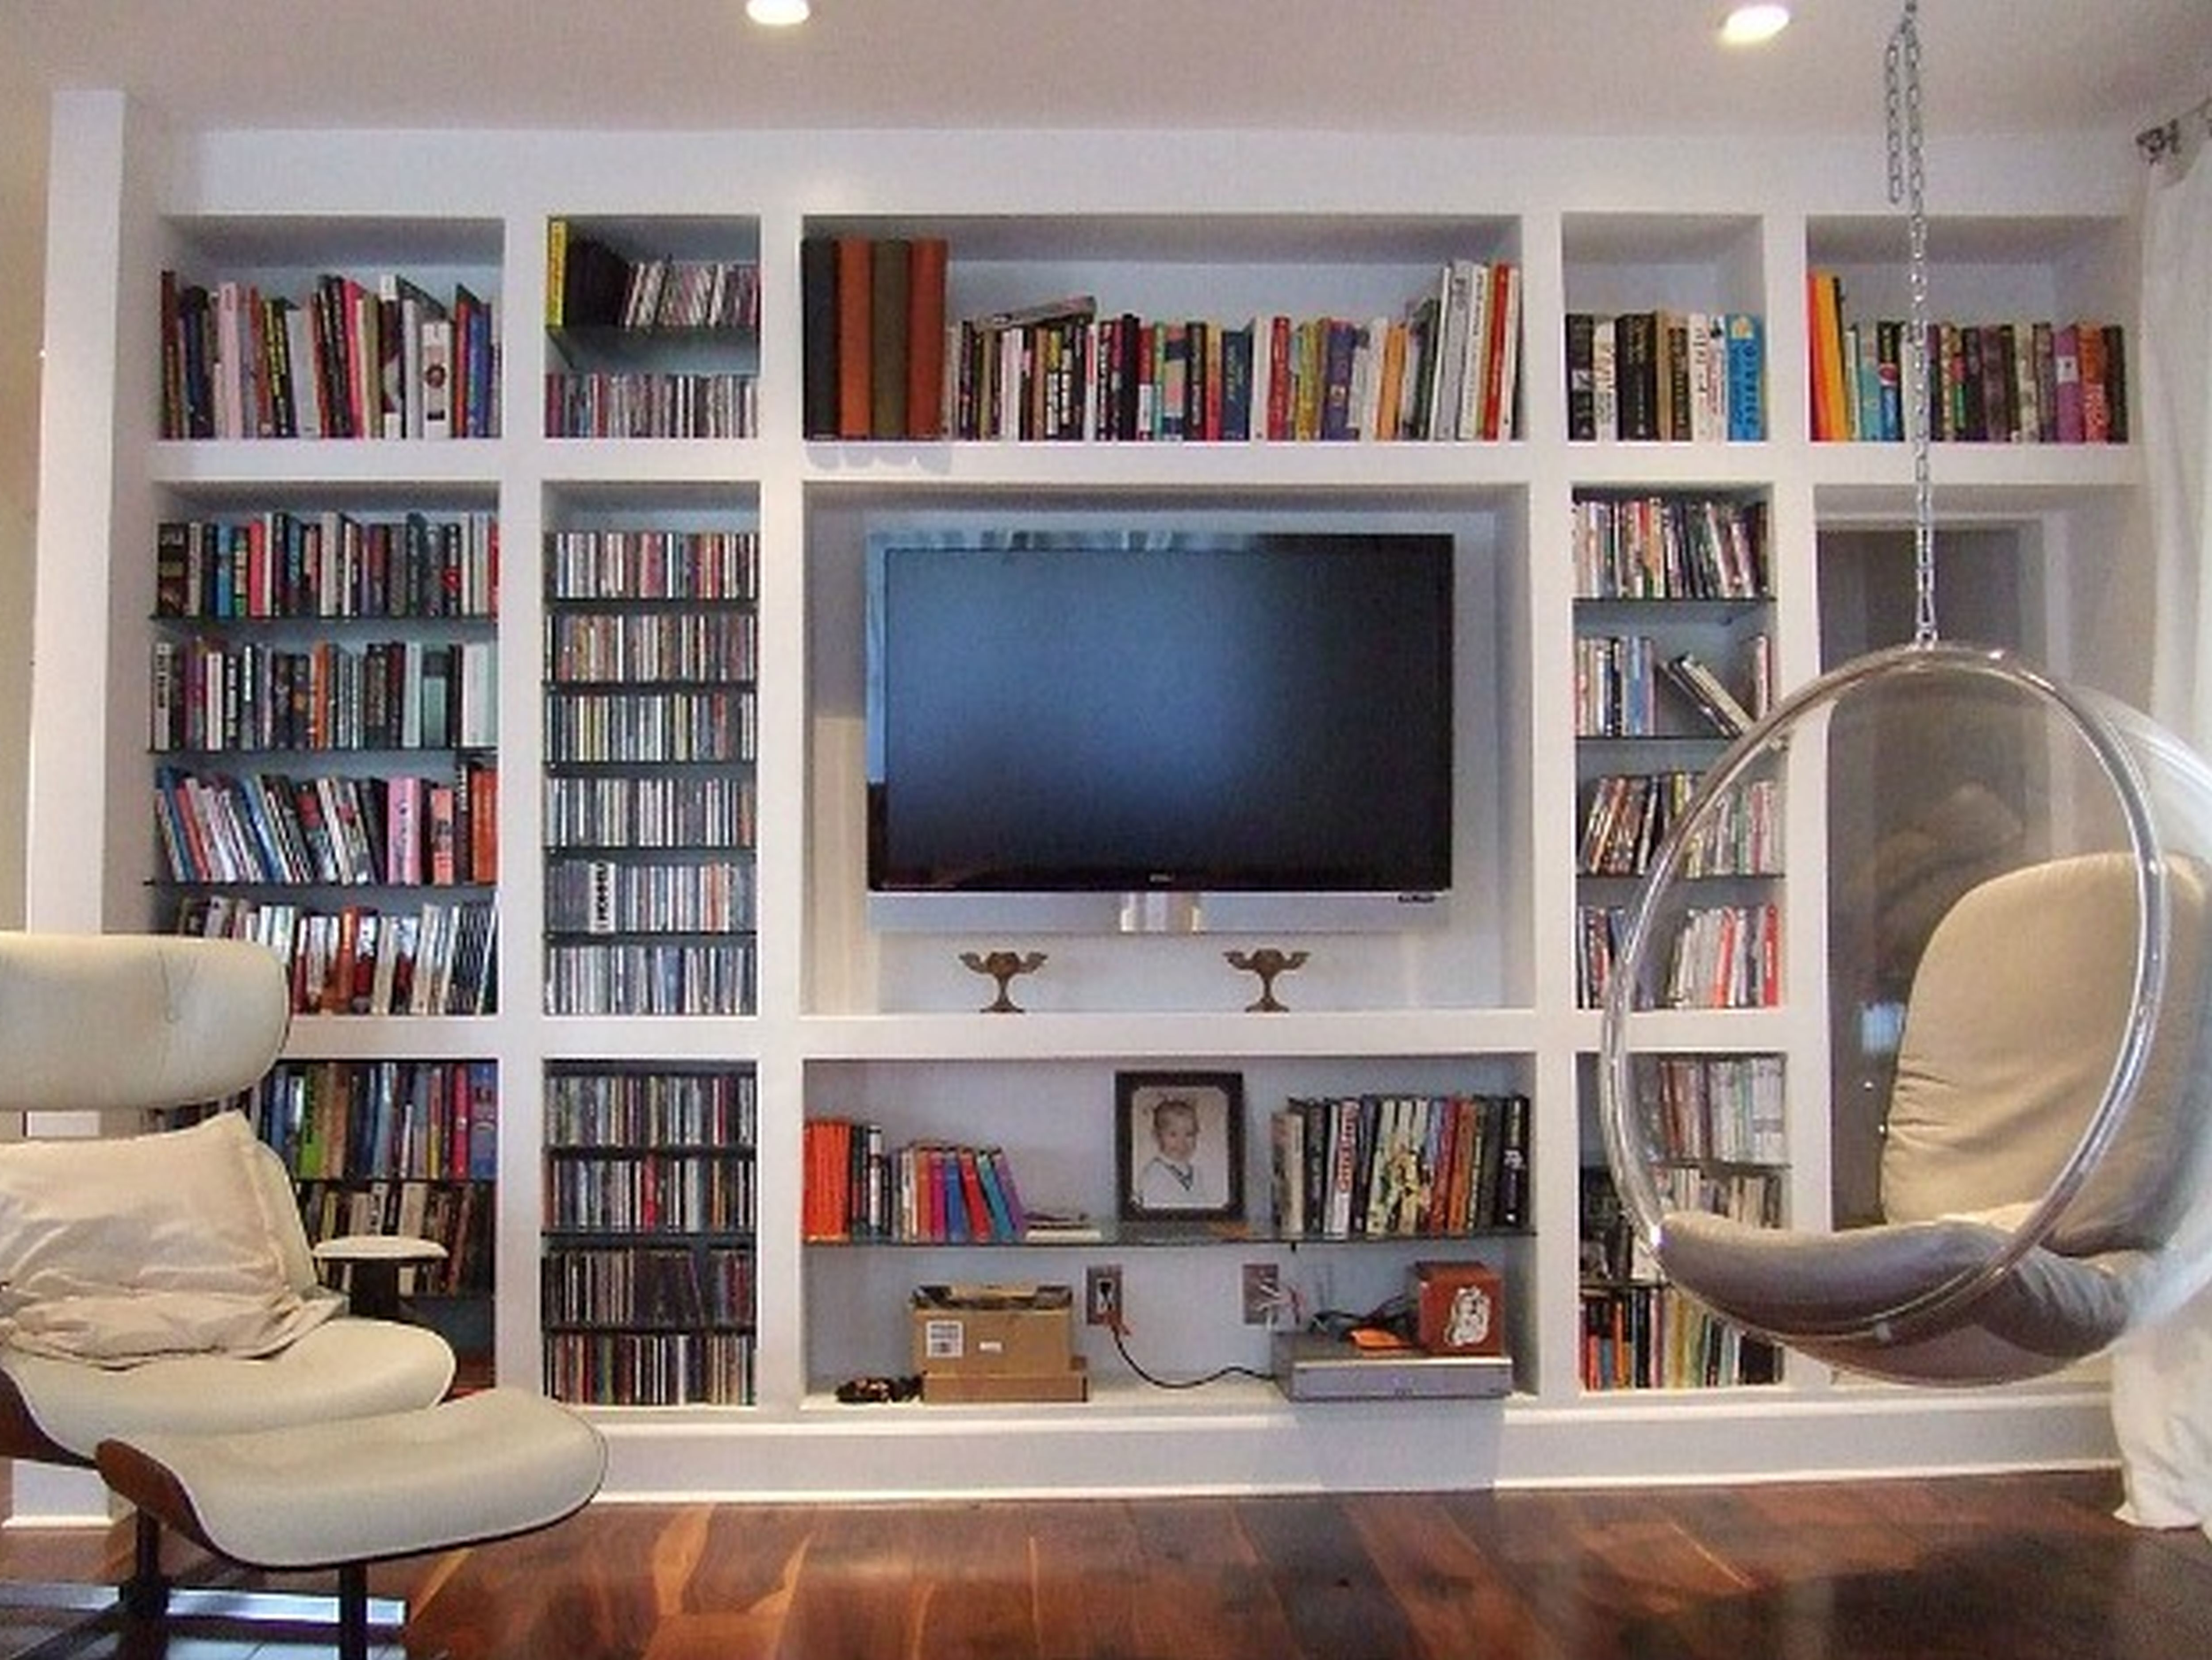 Most Popular Bookshelves Tv Pertaining To Bookshelves With Tv Space How To Build Around Fireplace Turn (View 2 of 15)